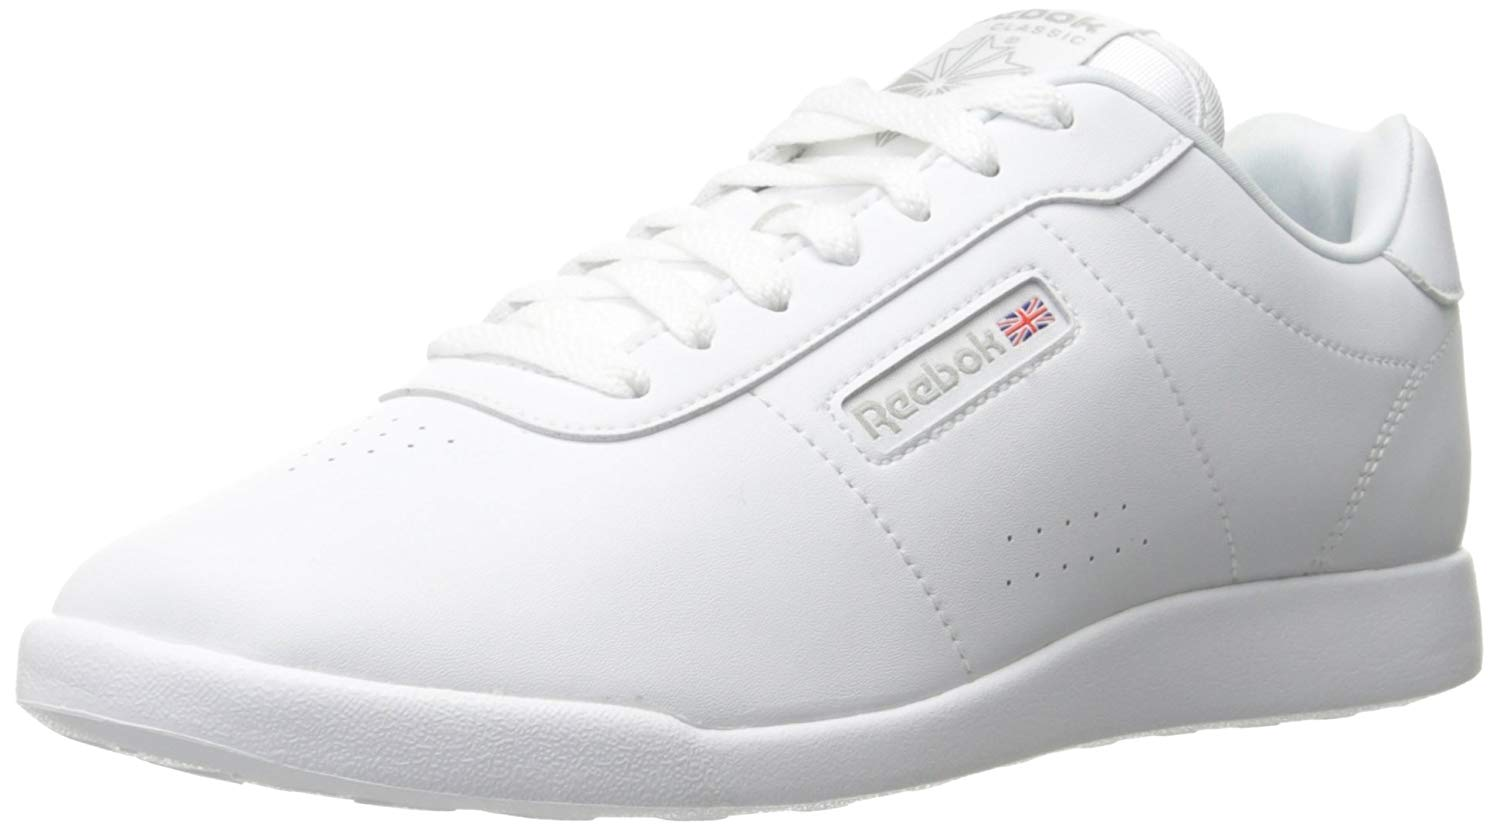 2ea2abb5dc5 Details about Reebok Princess Womens Fashion Sneakers White 9 US   7 UK